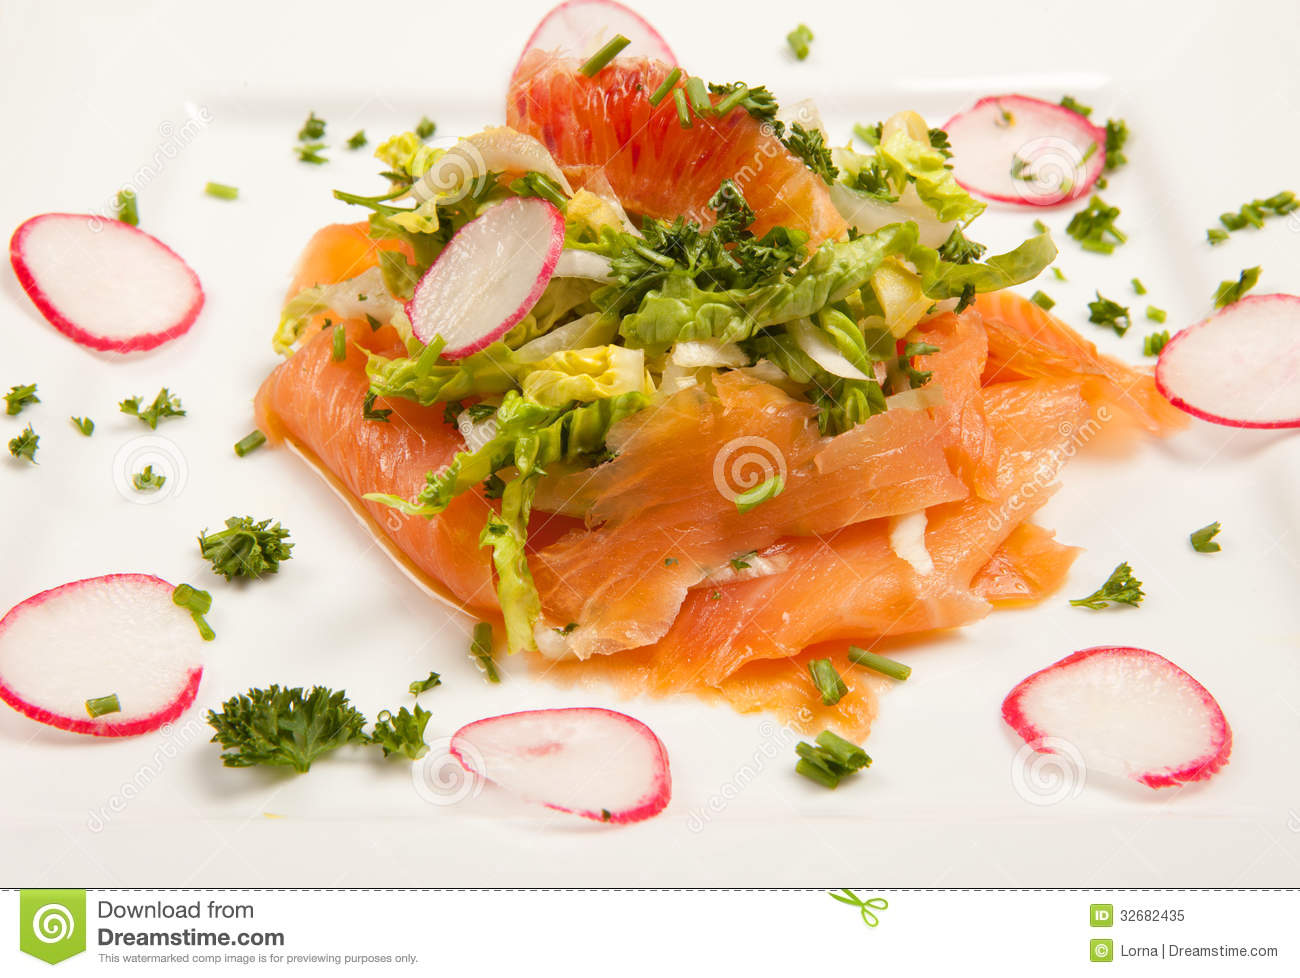 ... smoked salmon salad with blood orange and radish. seafood appetizer